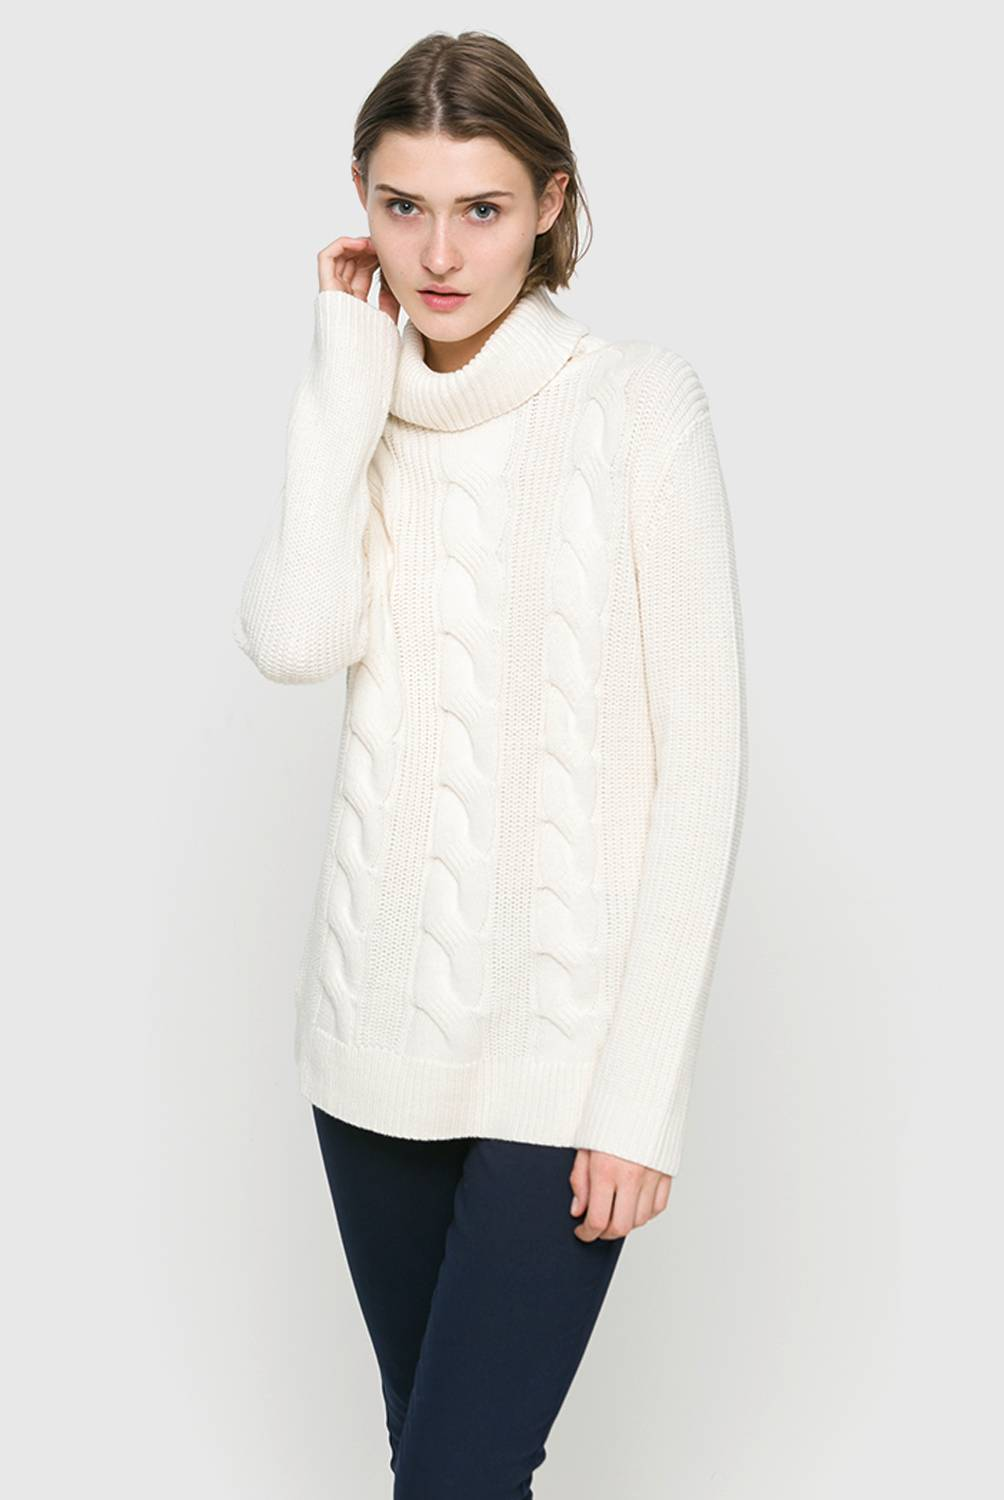 University Club - Sweater Manga Larga Mujer